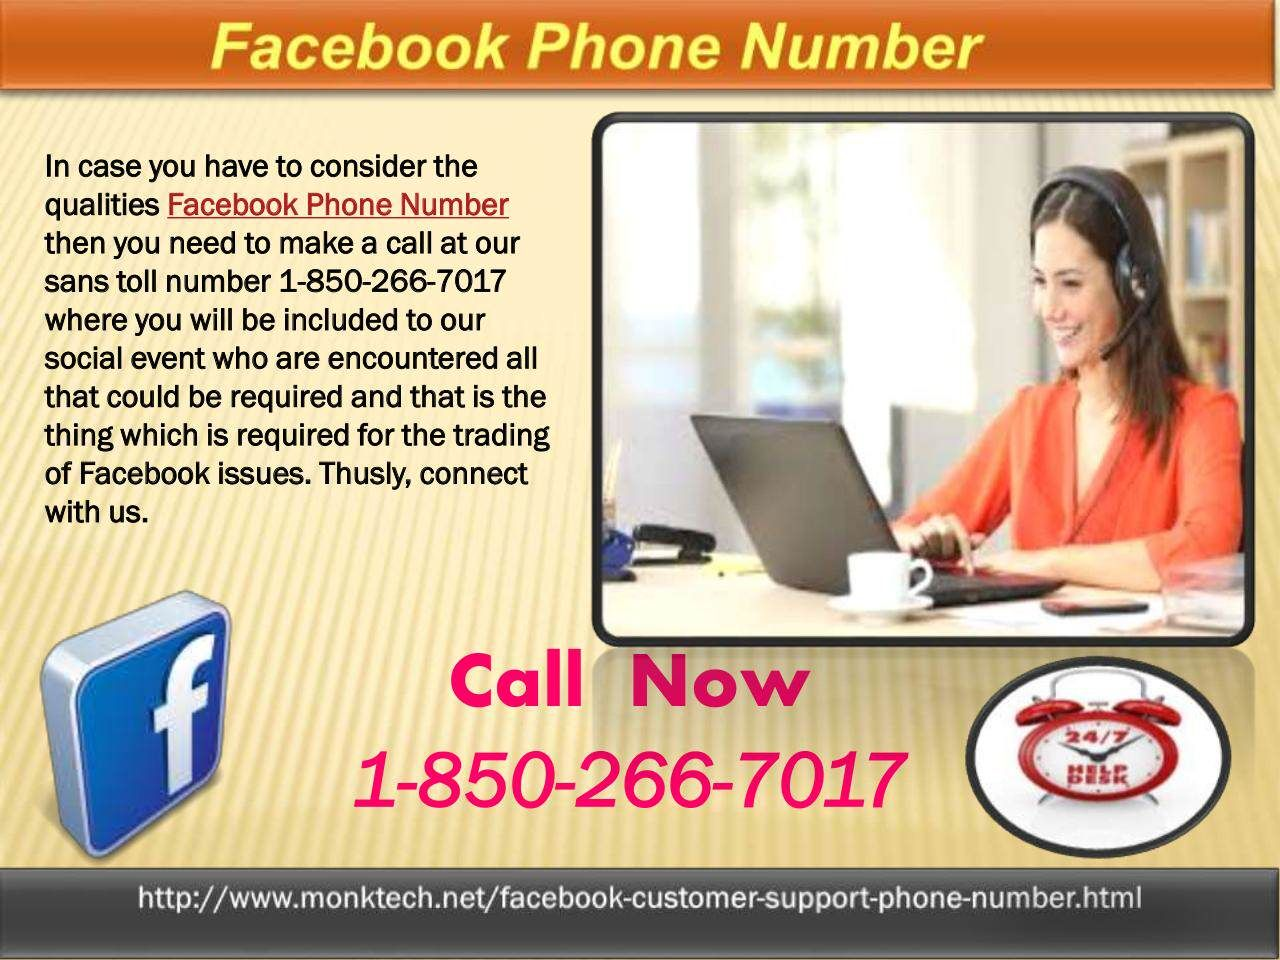 Why does Facebook Phone number 1-850-266-7017 call the most ideal way?